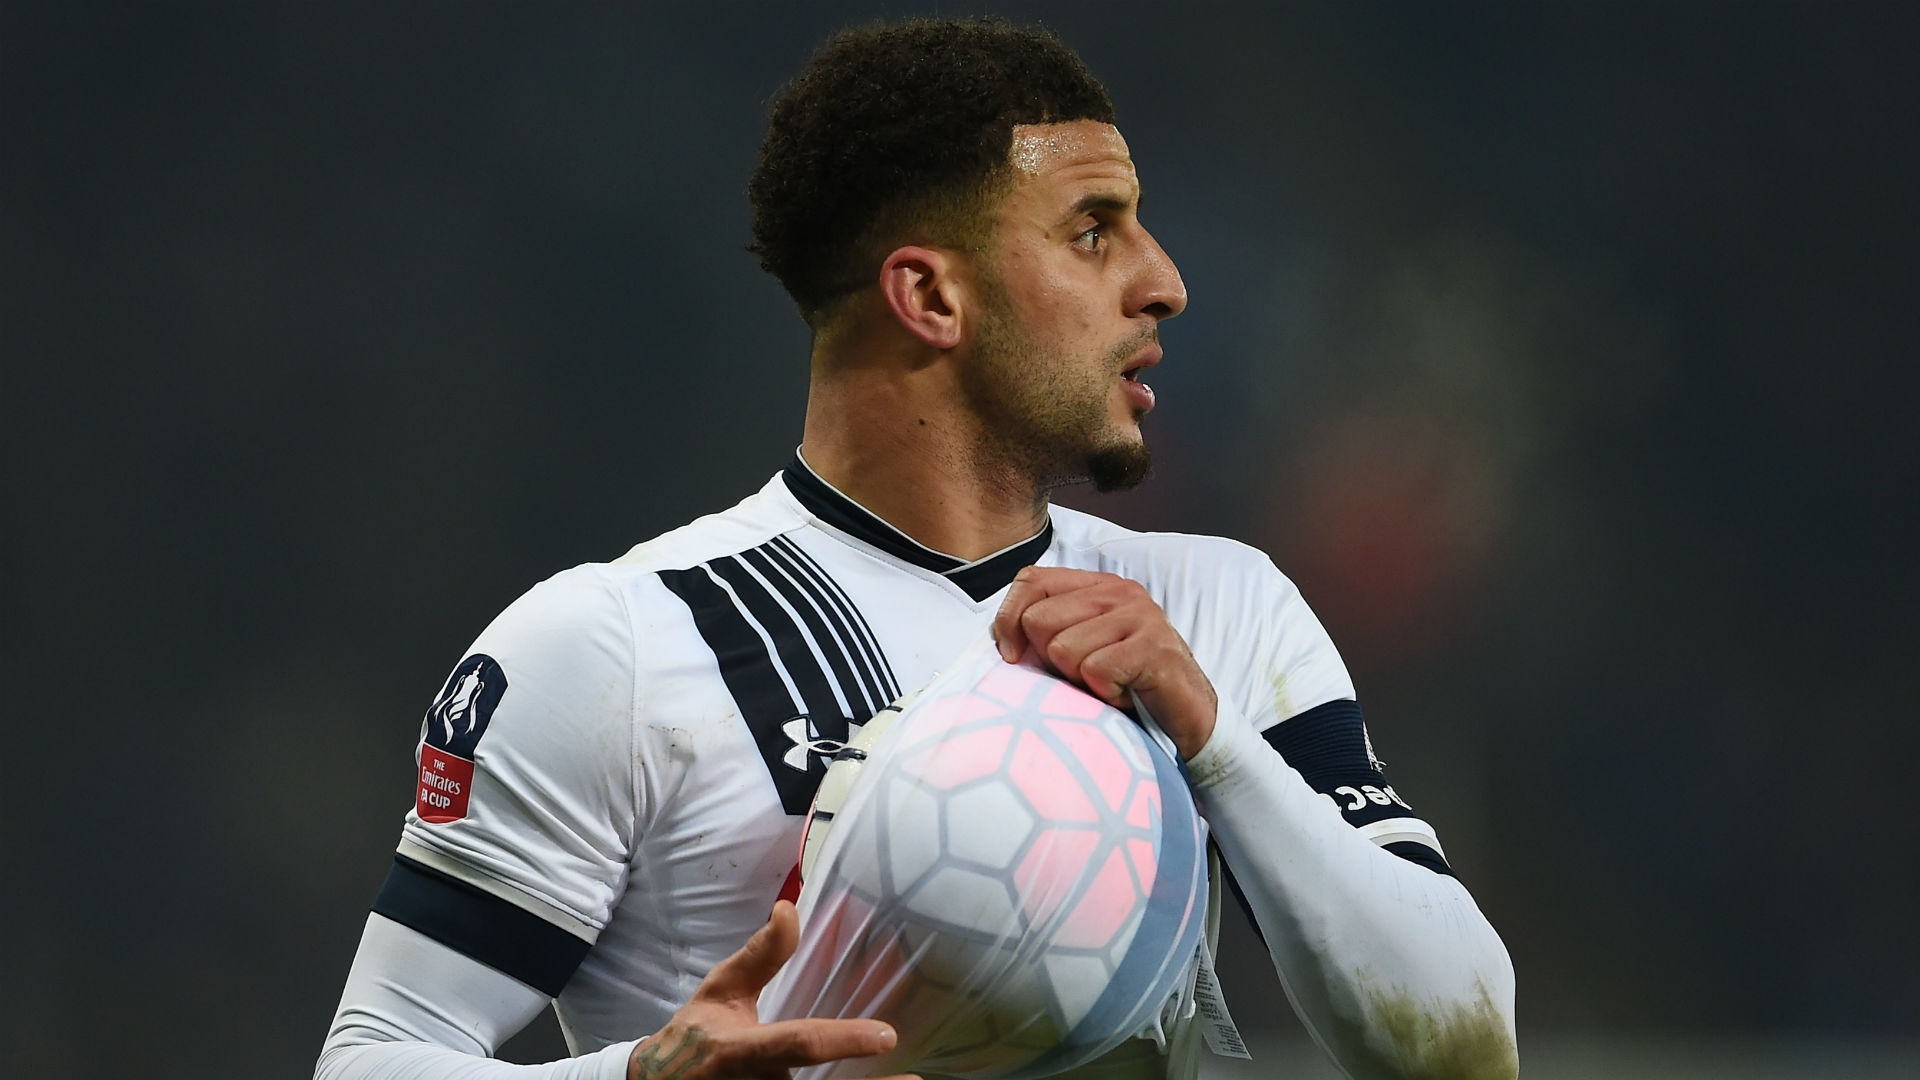 Kyle Walker enjoyed a successful season with Tottenham last year. The team finished second in the Premier League and Walker was among Spurs' and the League's best players.